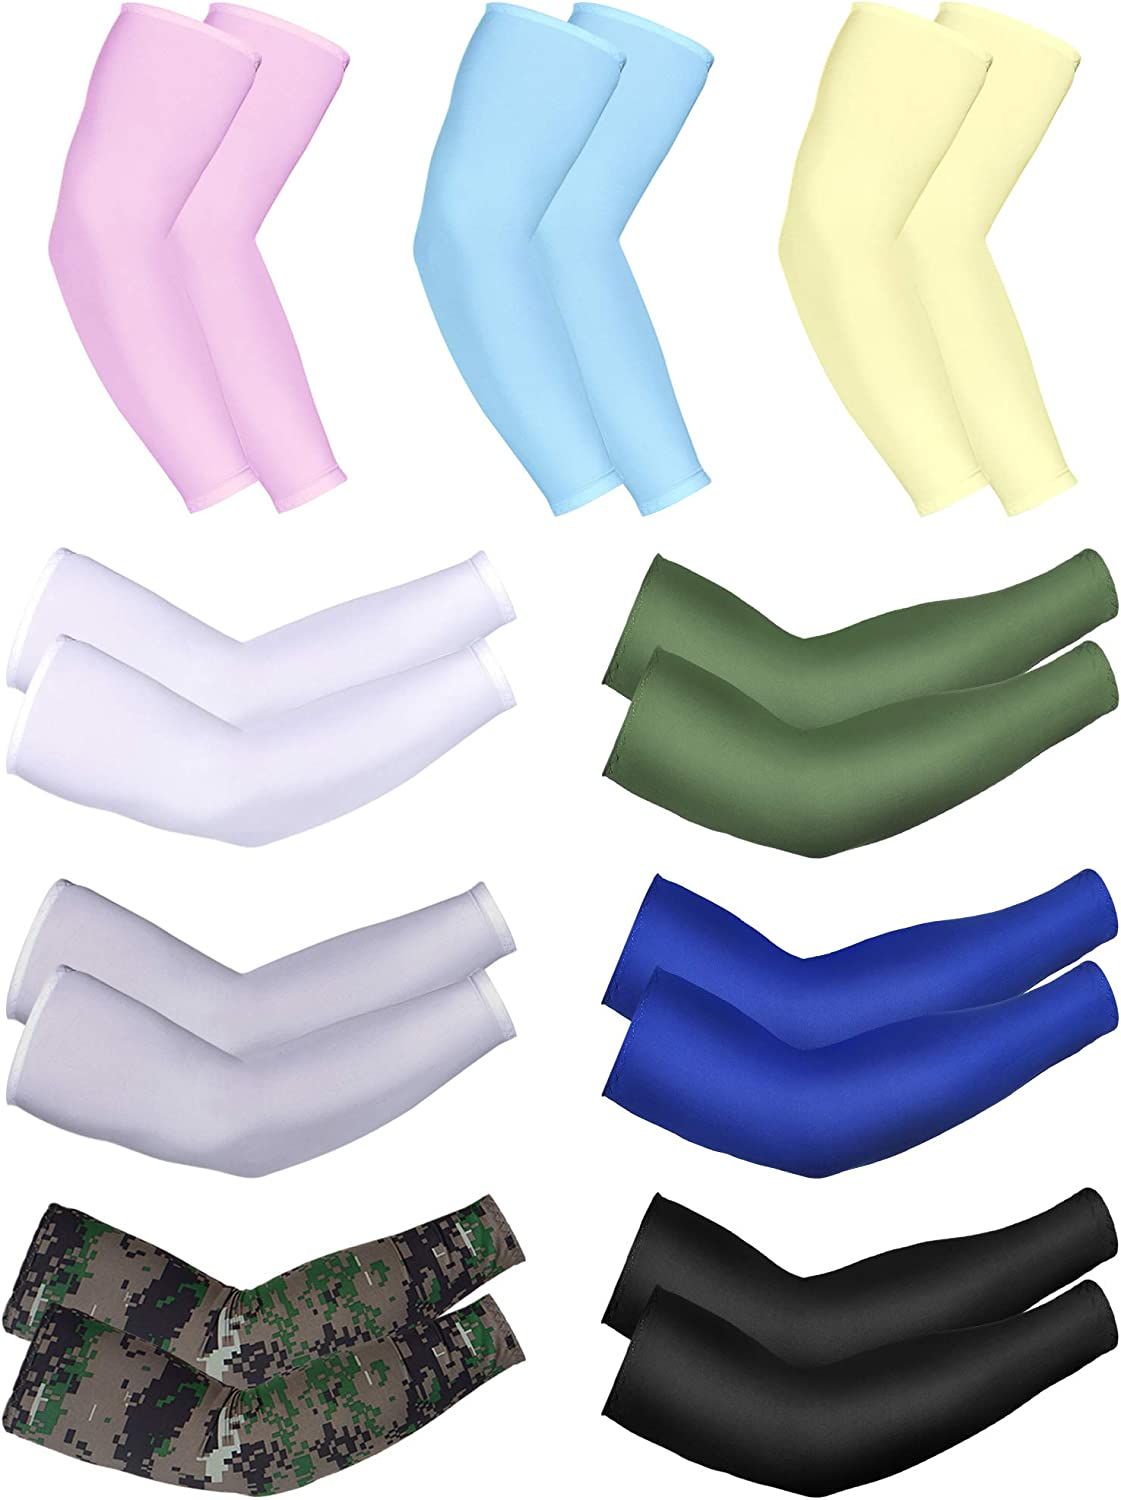 Arm Sleeves Lovely-Blue-Rose Mens Sun UV Protection Sleeves Arm Warmers Cool Long Set Covers